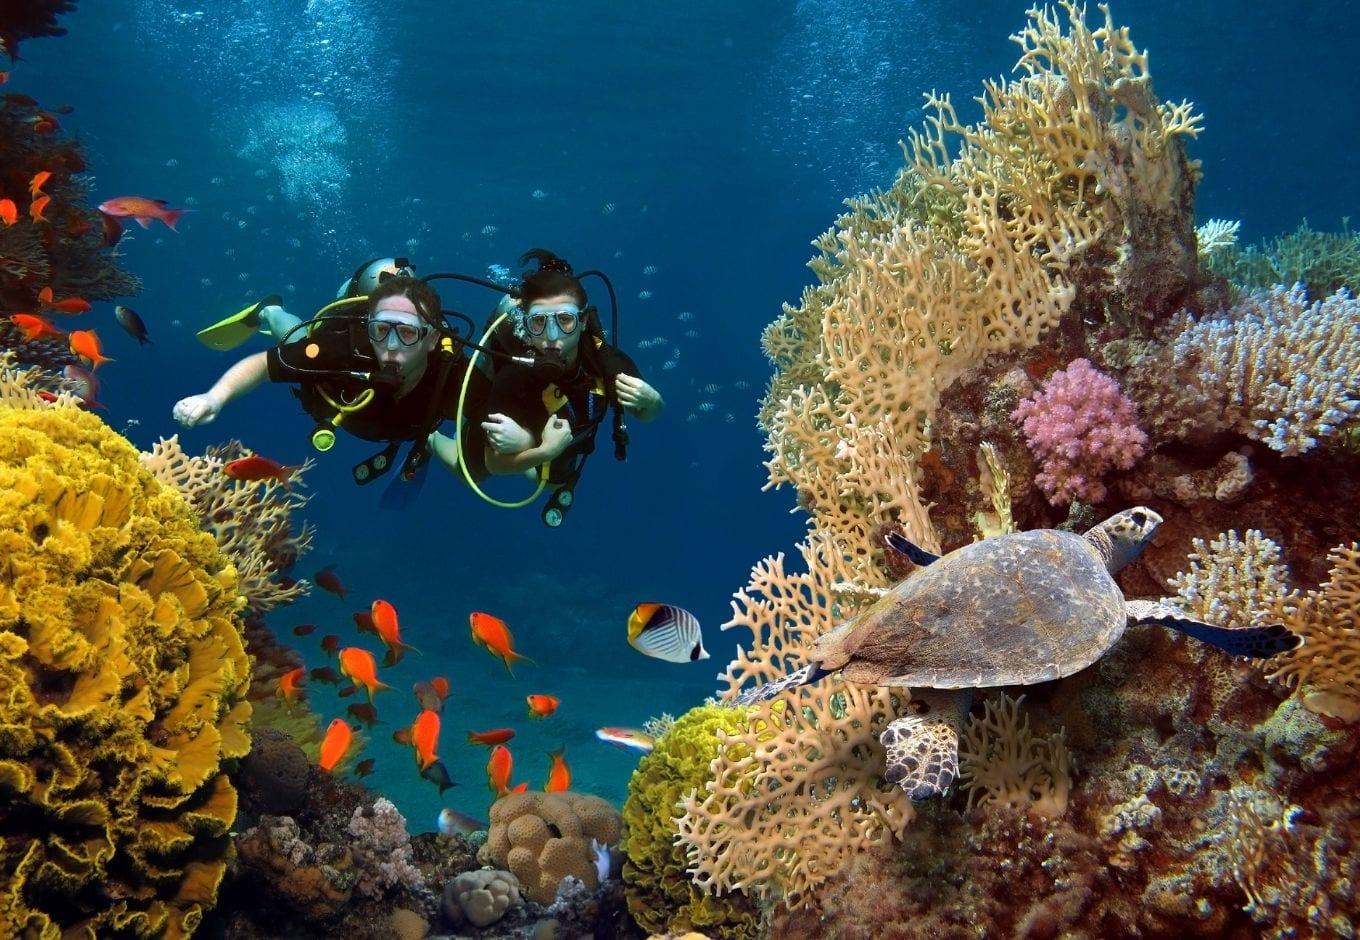 Two divers, a male and a female, under the ocean facing orange fishes, corals and a sea turtle.